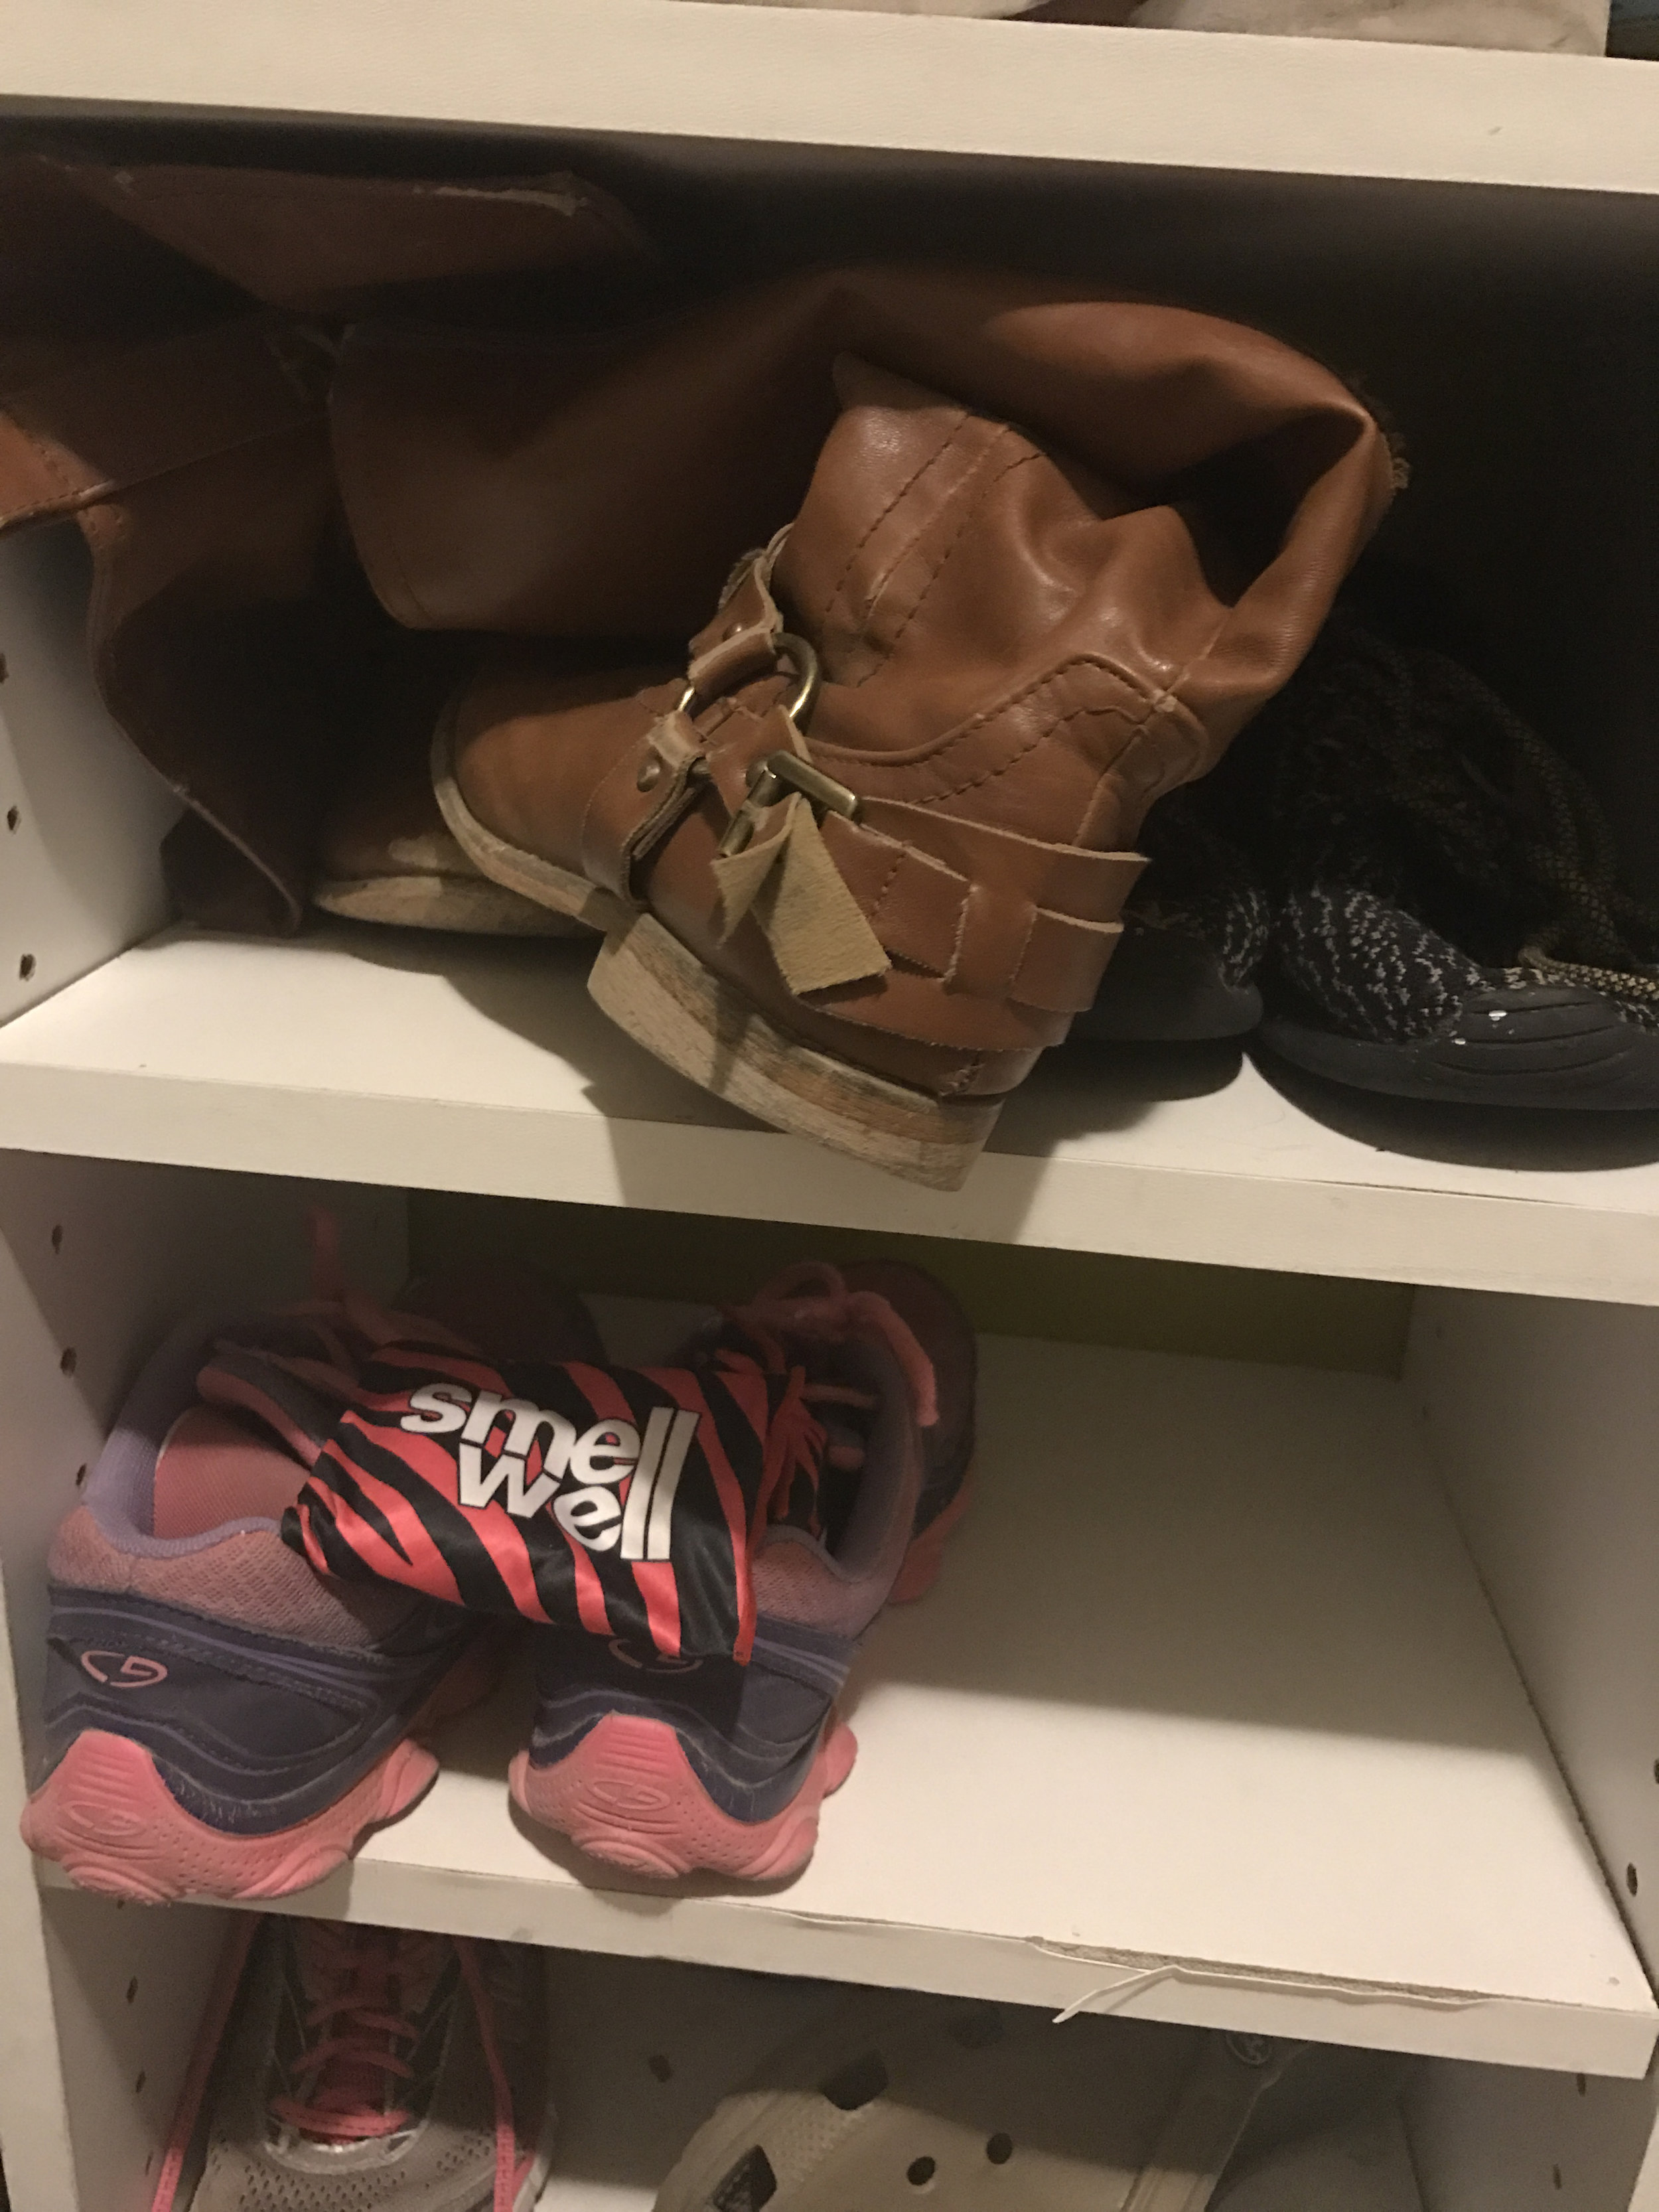 I snuck a few of these magical beanbags into my kids shoe cubbies. Disregard the disrepair of the shelves.... this is why we can't have nice things....